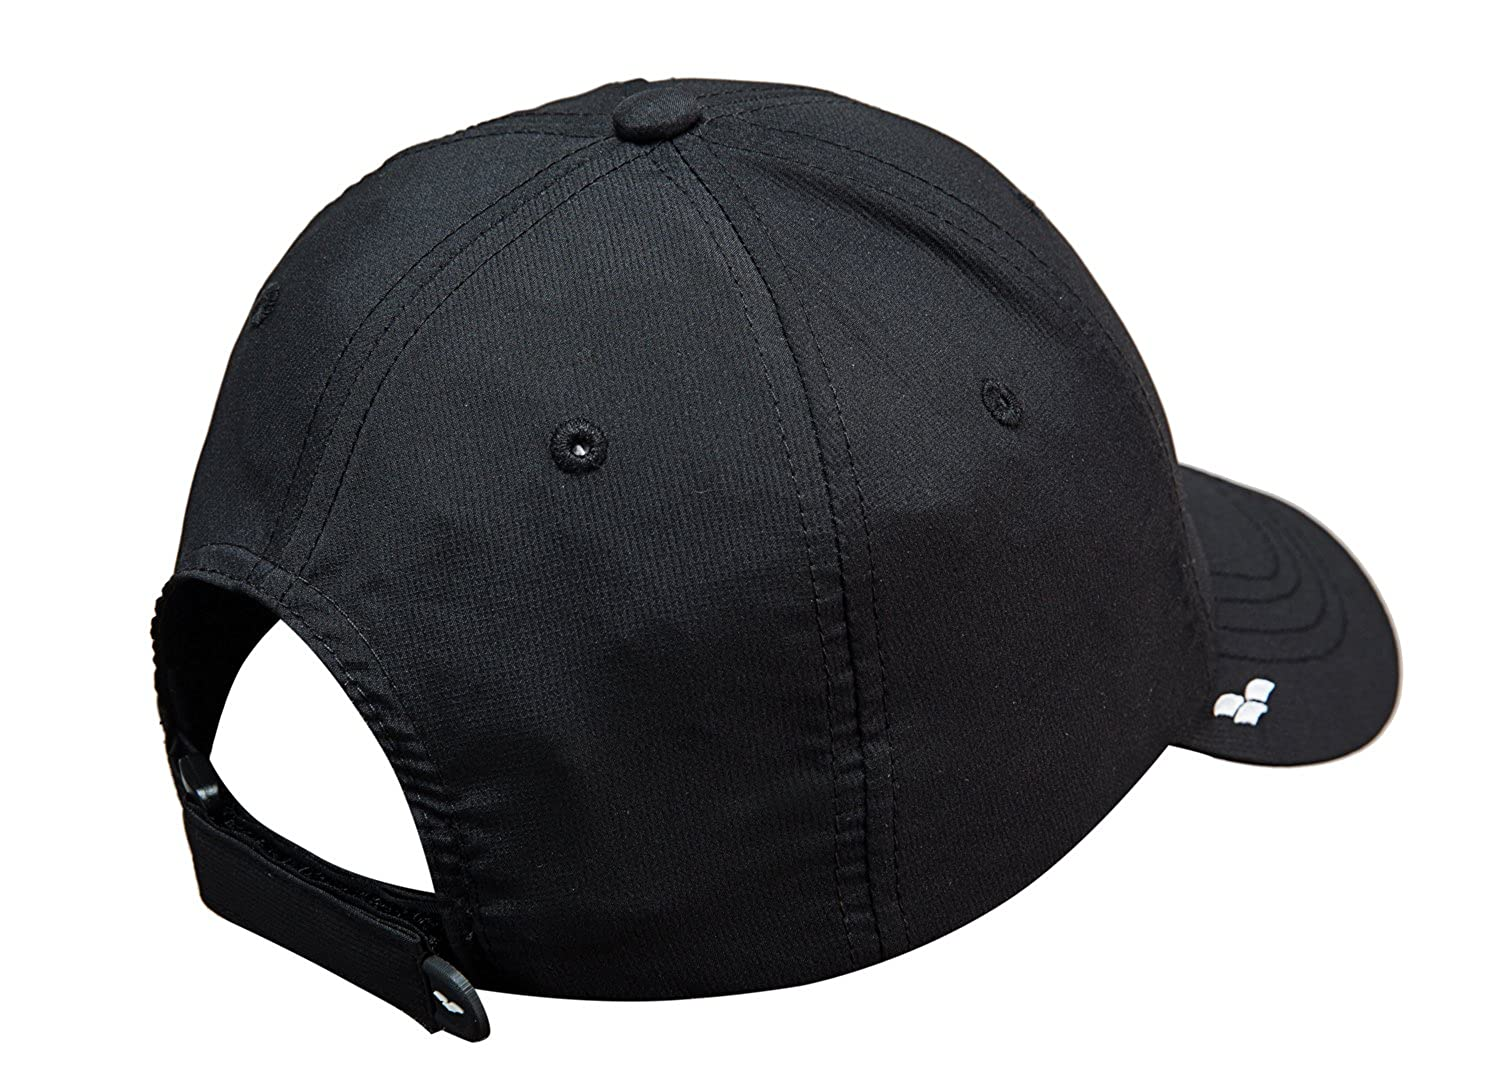 572aa88edf MIERSPORTS Unisex Running Golf Sports Hat Water-Resistant Baseball Cap,  Black at Amazon Men's Clothing store: